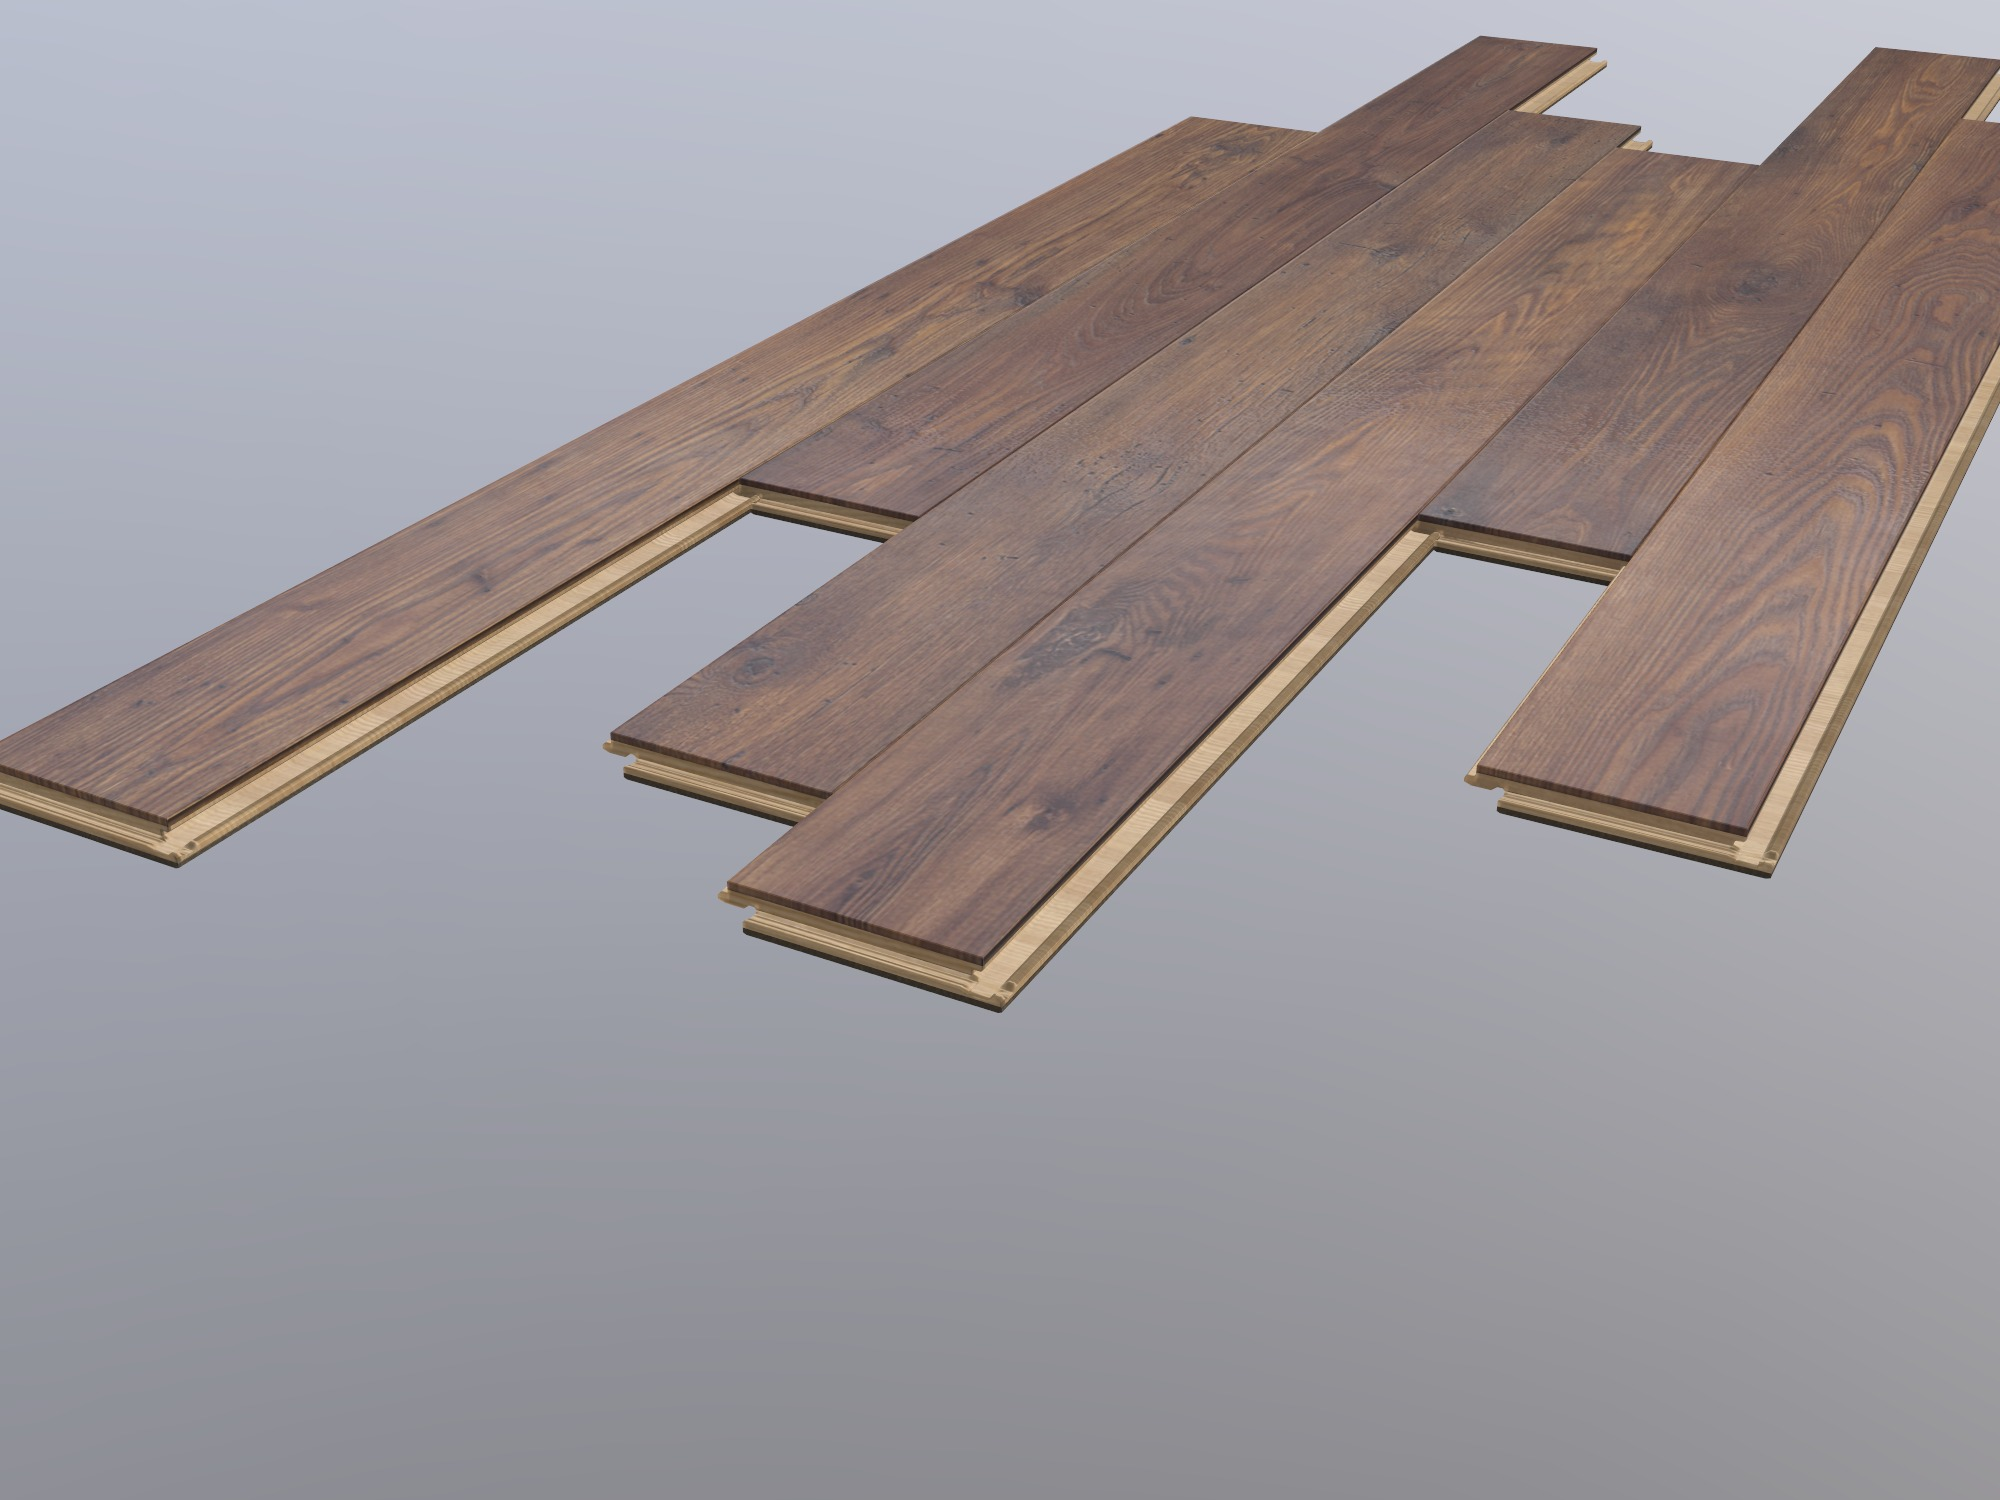 floor (copy) - 3D design by giorgiooandriani on Jan 17, 2019